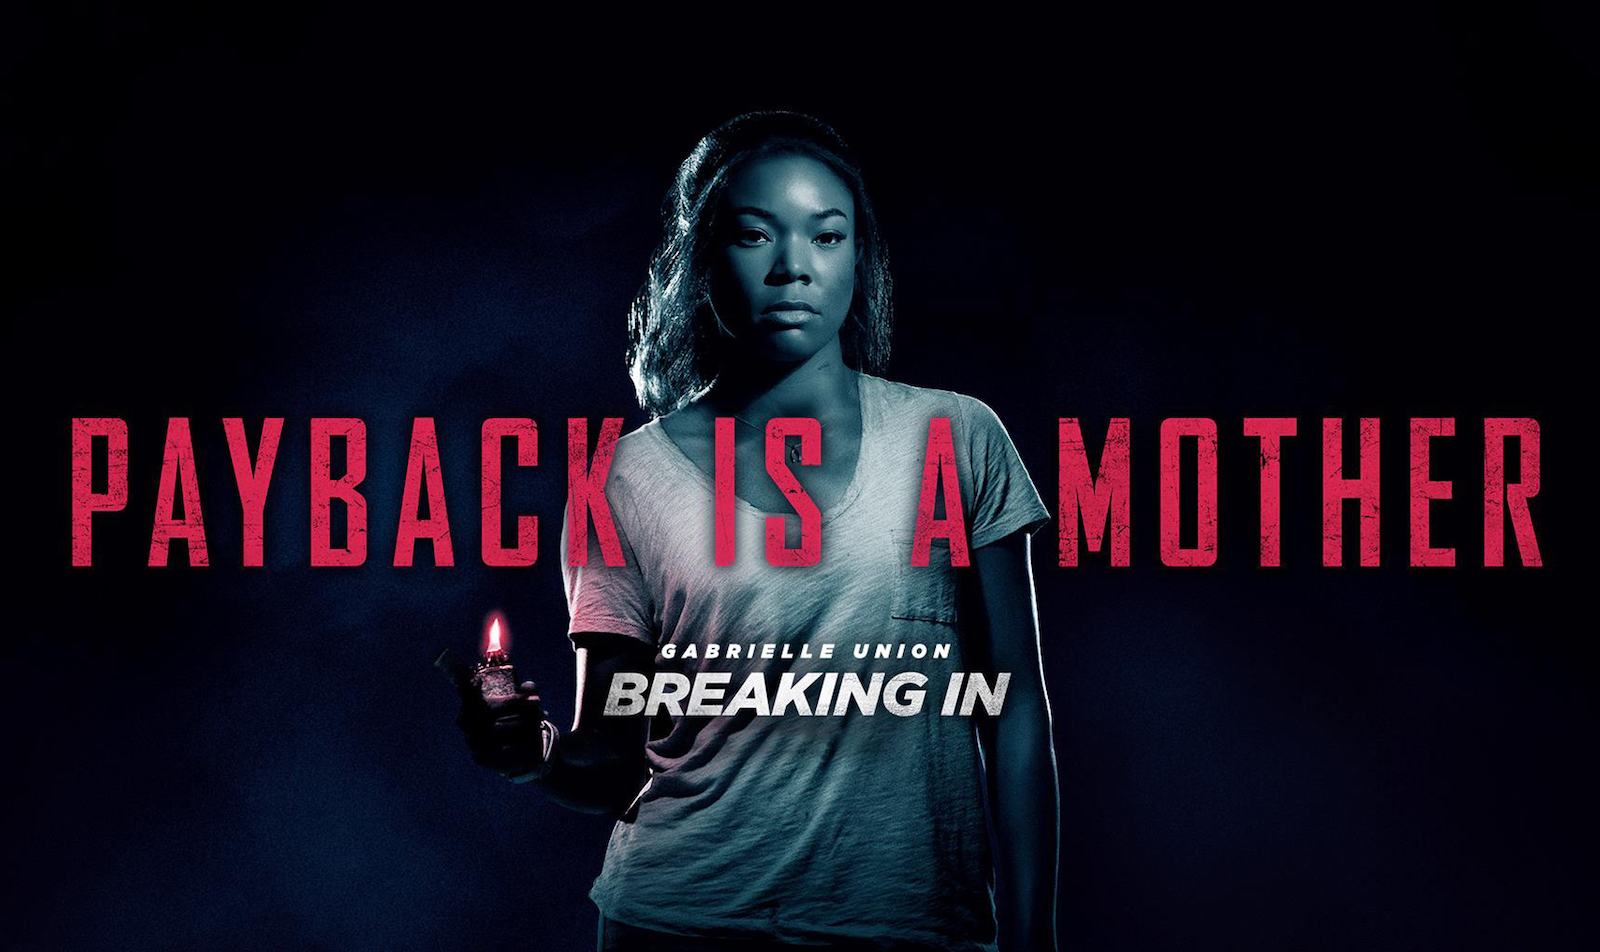 Breaking In with Gabrielle Union